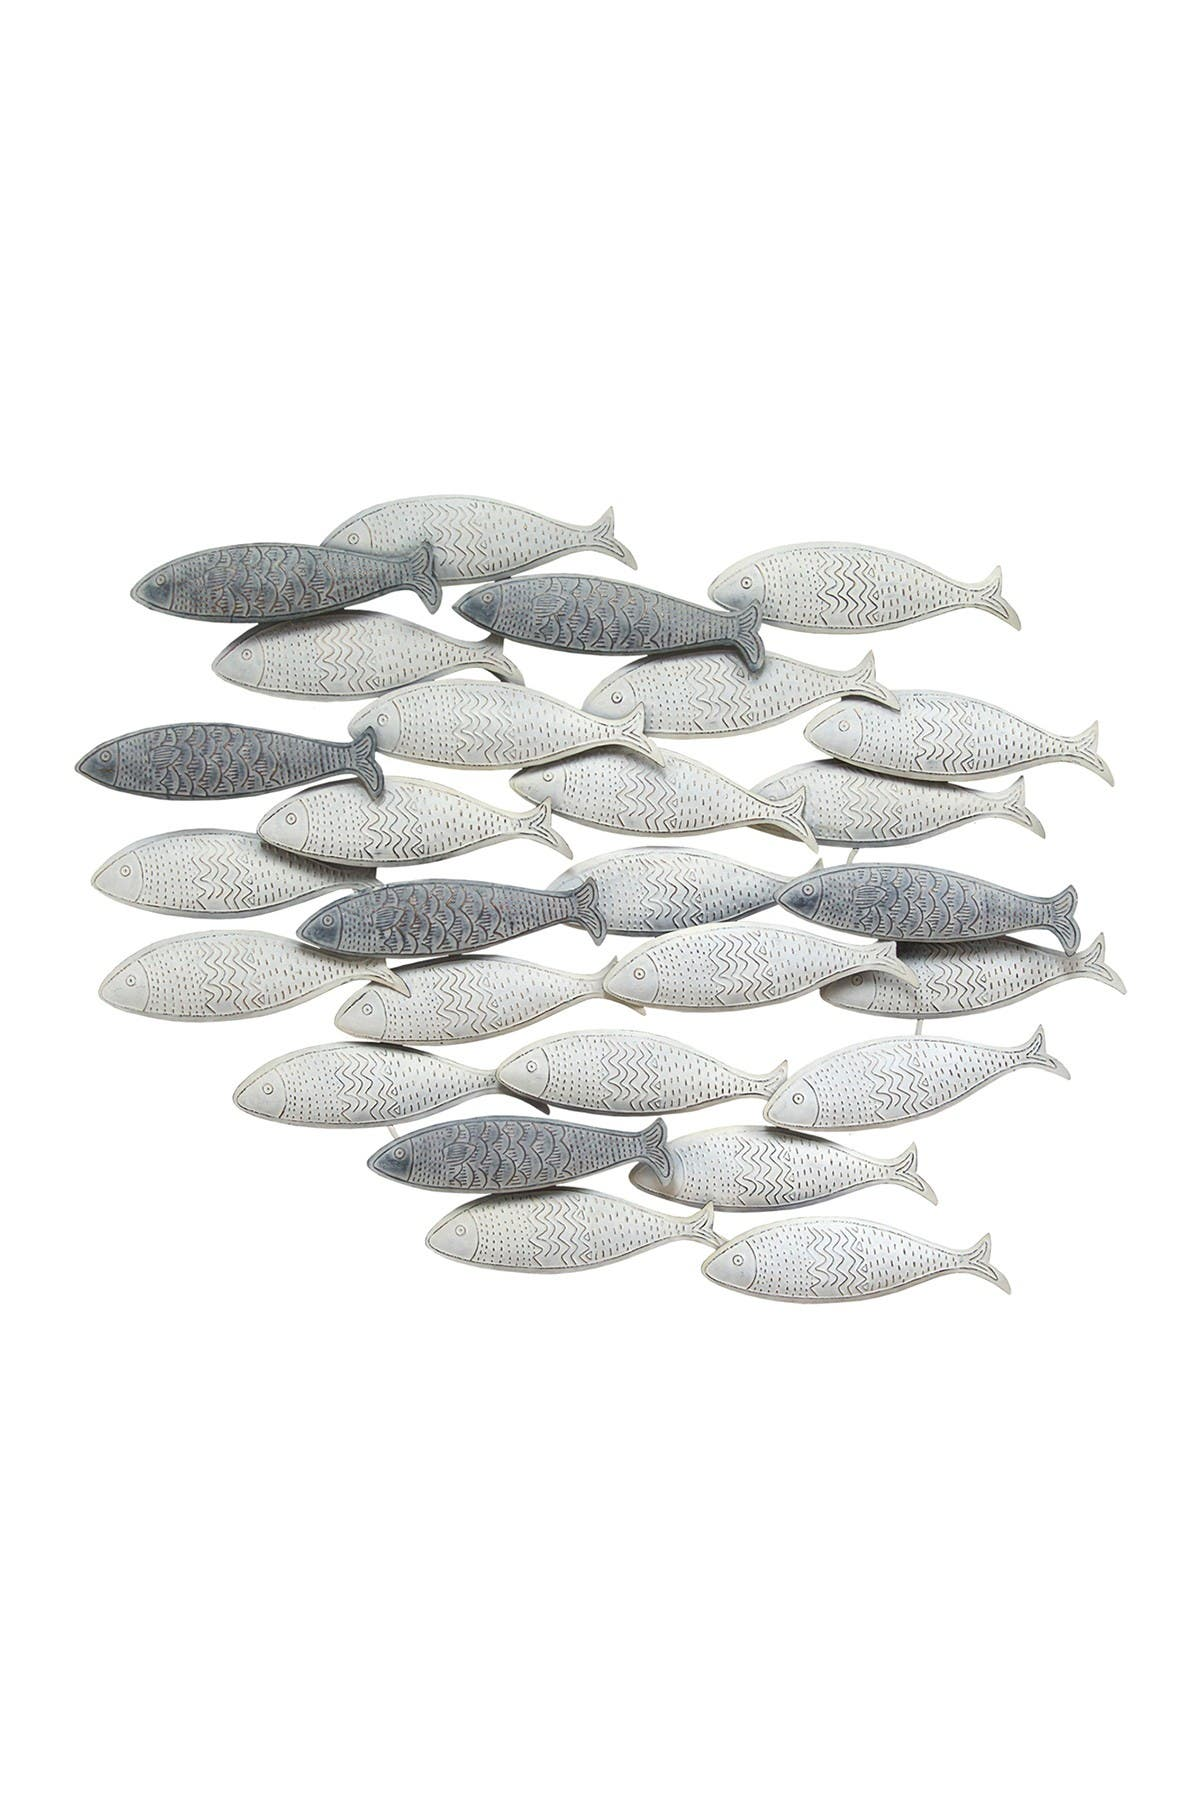 Image of Stratton Home Grey School of Fish Wall Decor